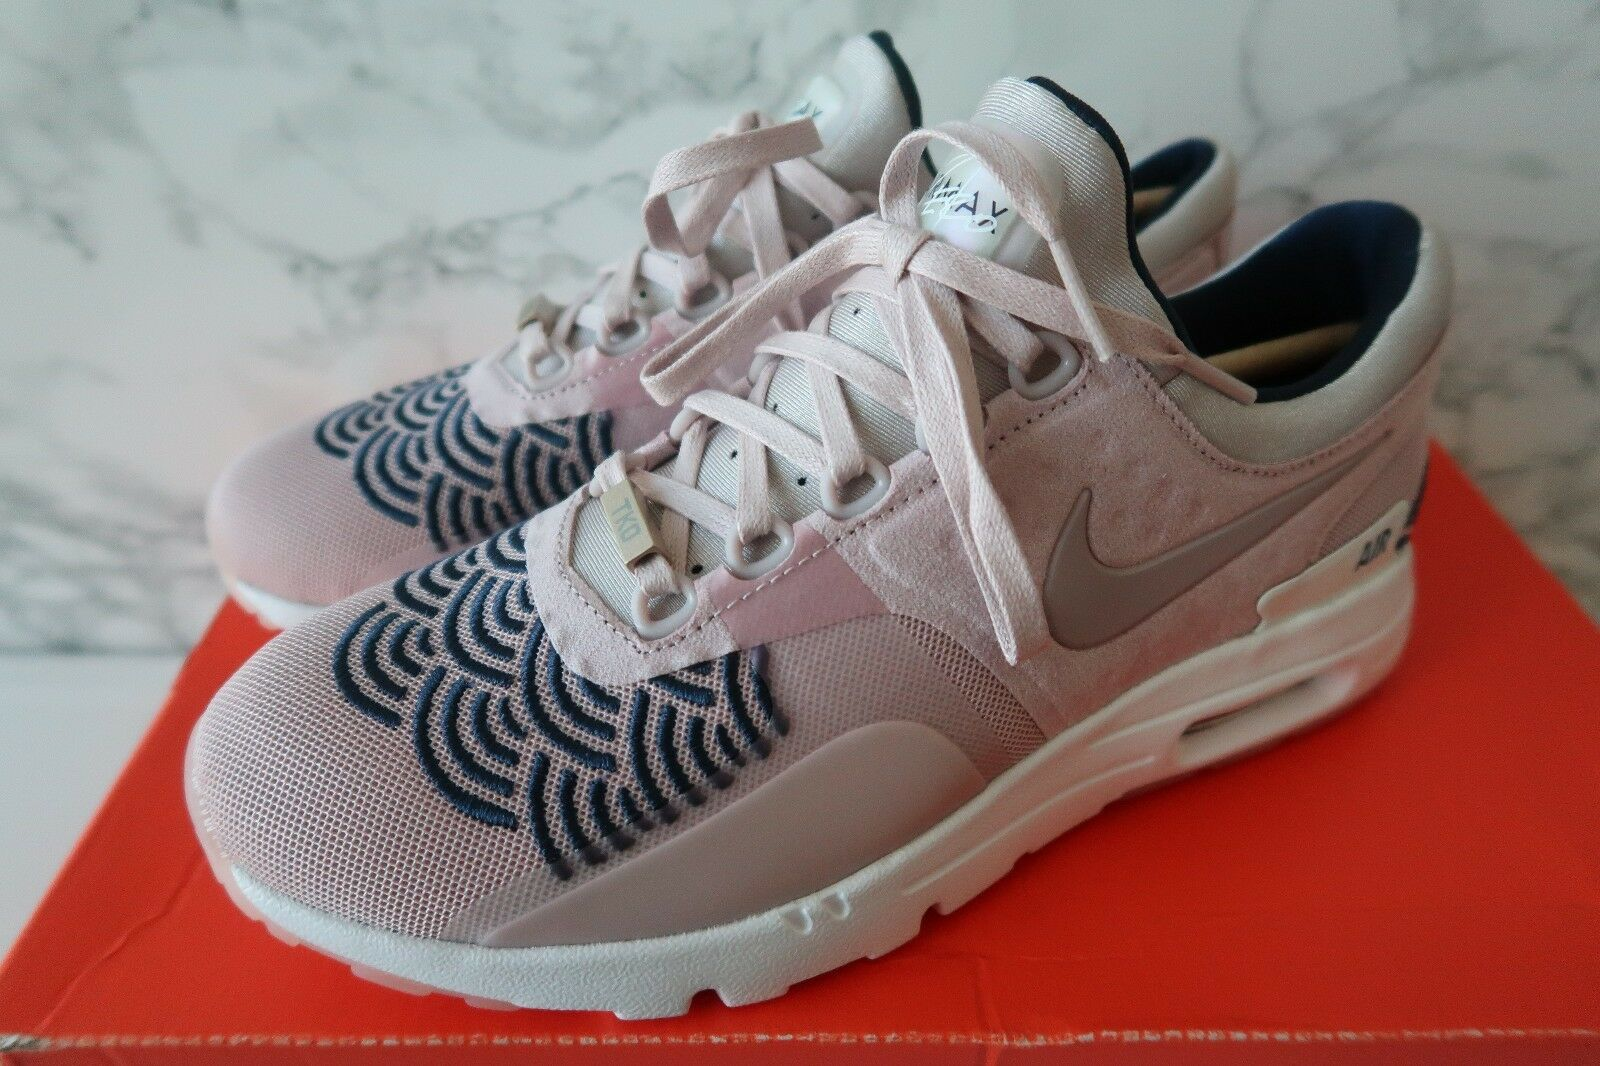 NIKE Women's AIR MAX ZERO LOTC QS TOKYO Limited Edition size 6.5 New with Box Seasonal clearance sale